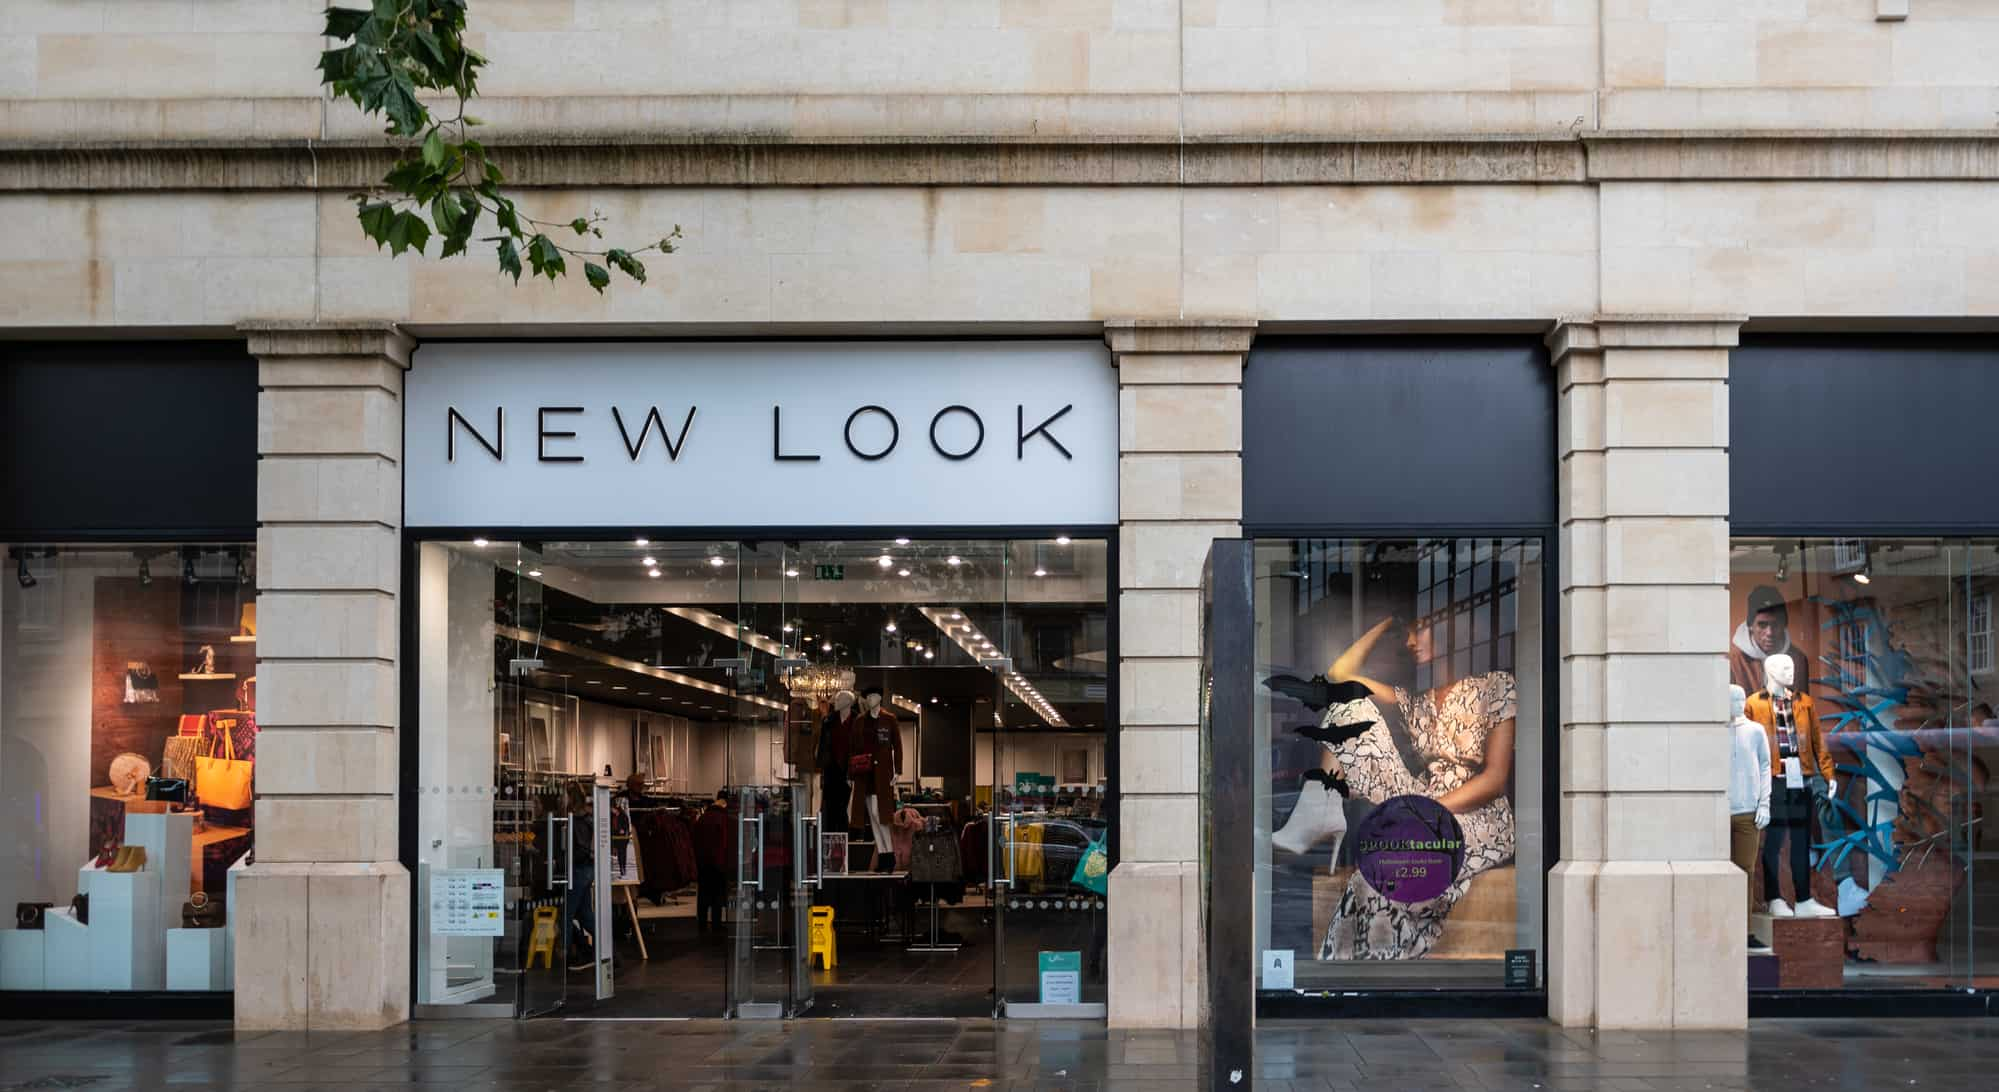 Move of the Week: A New Look for former House of Fraser boss